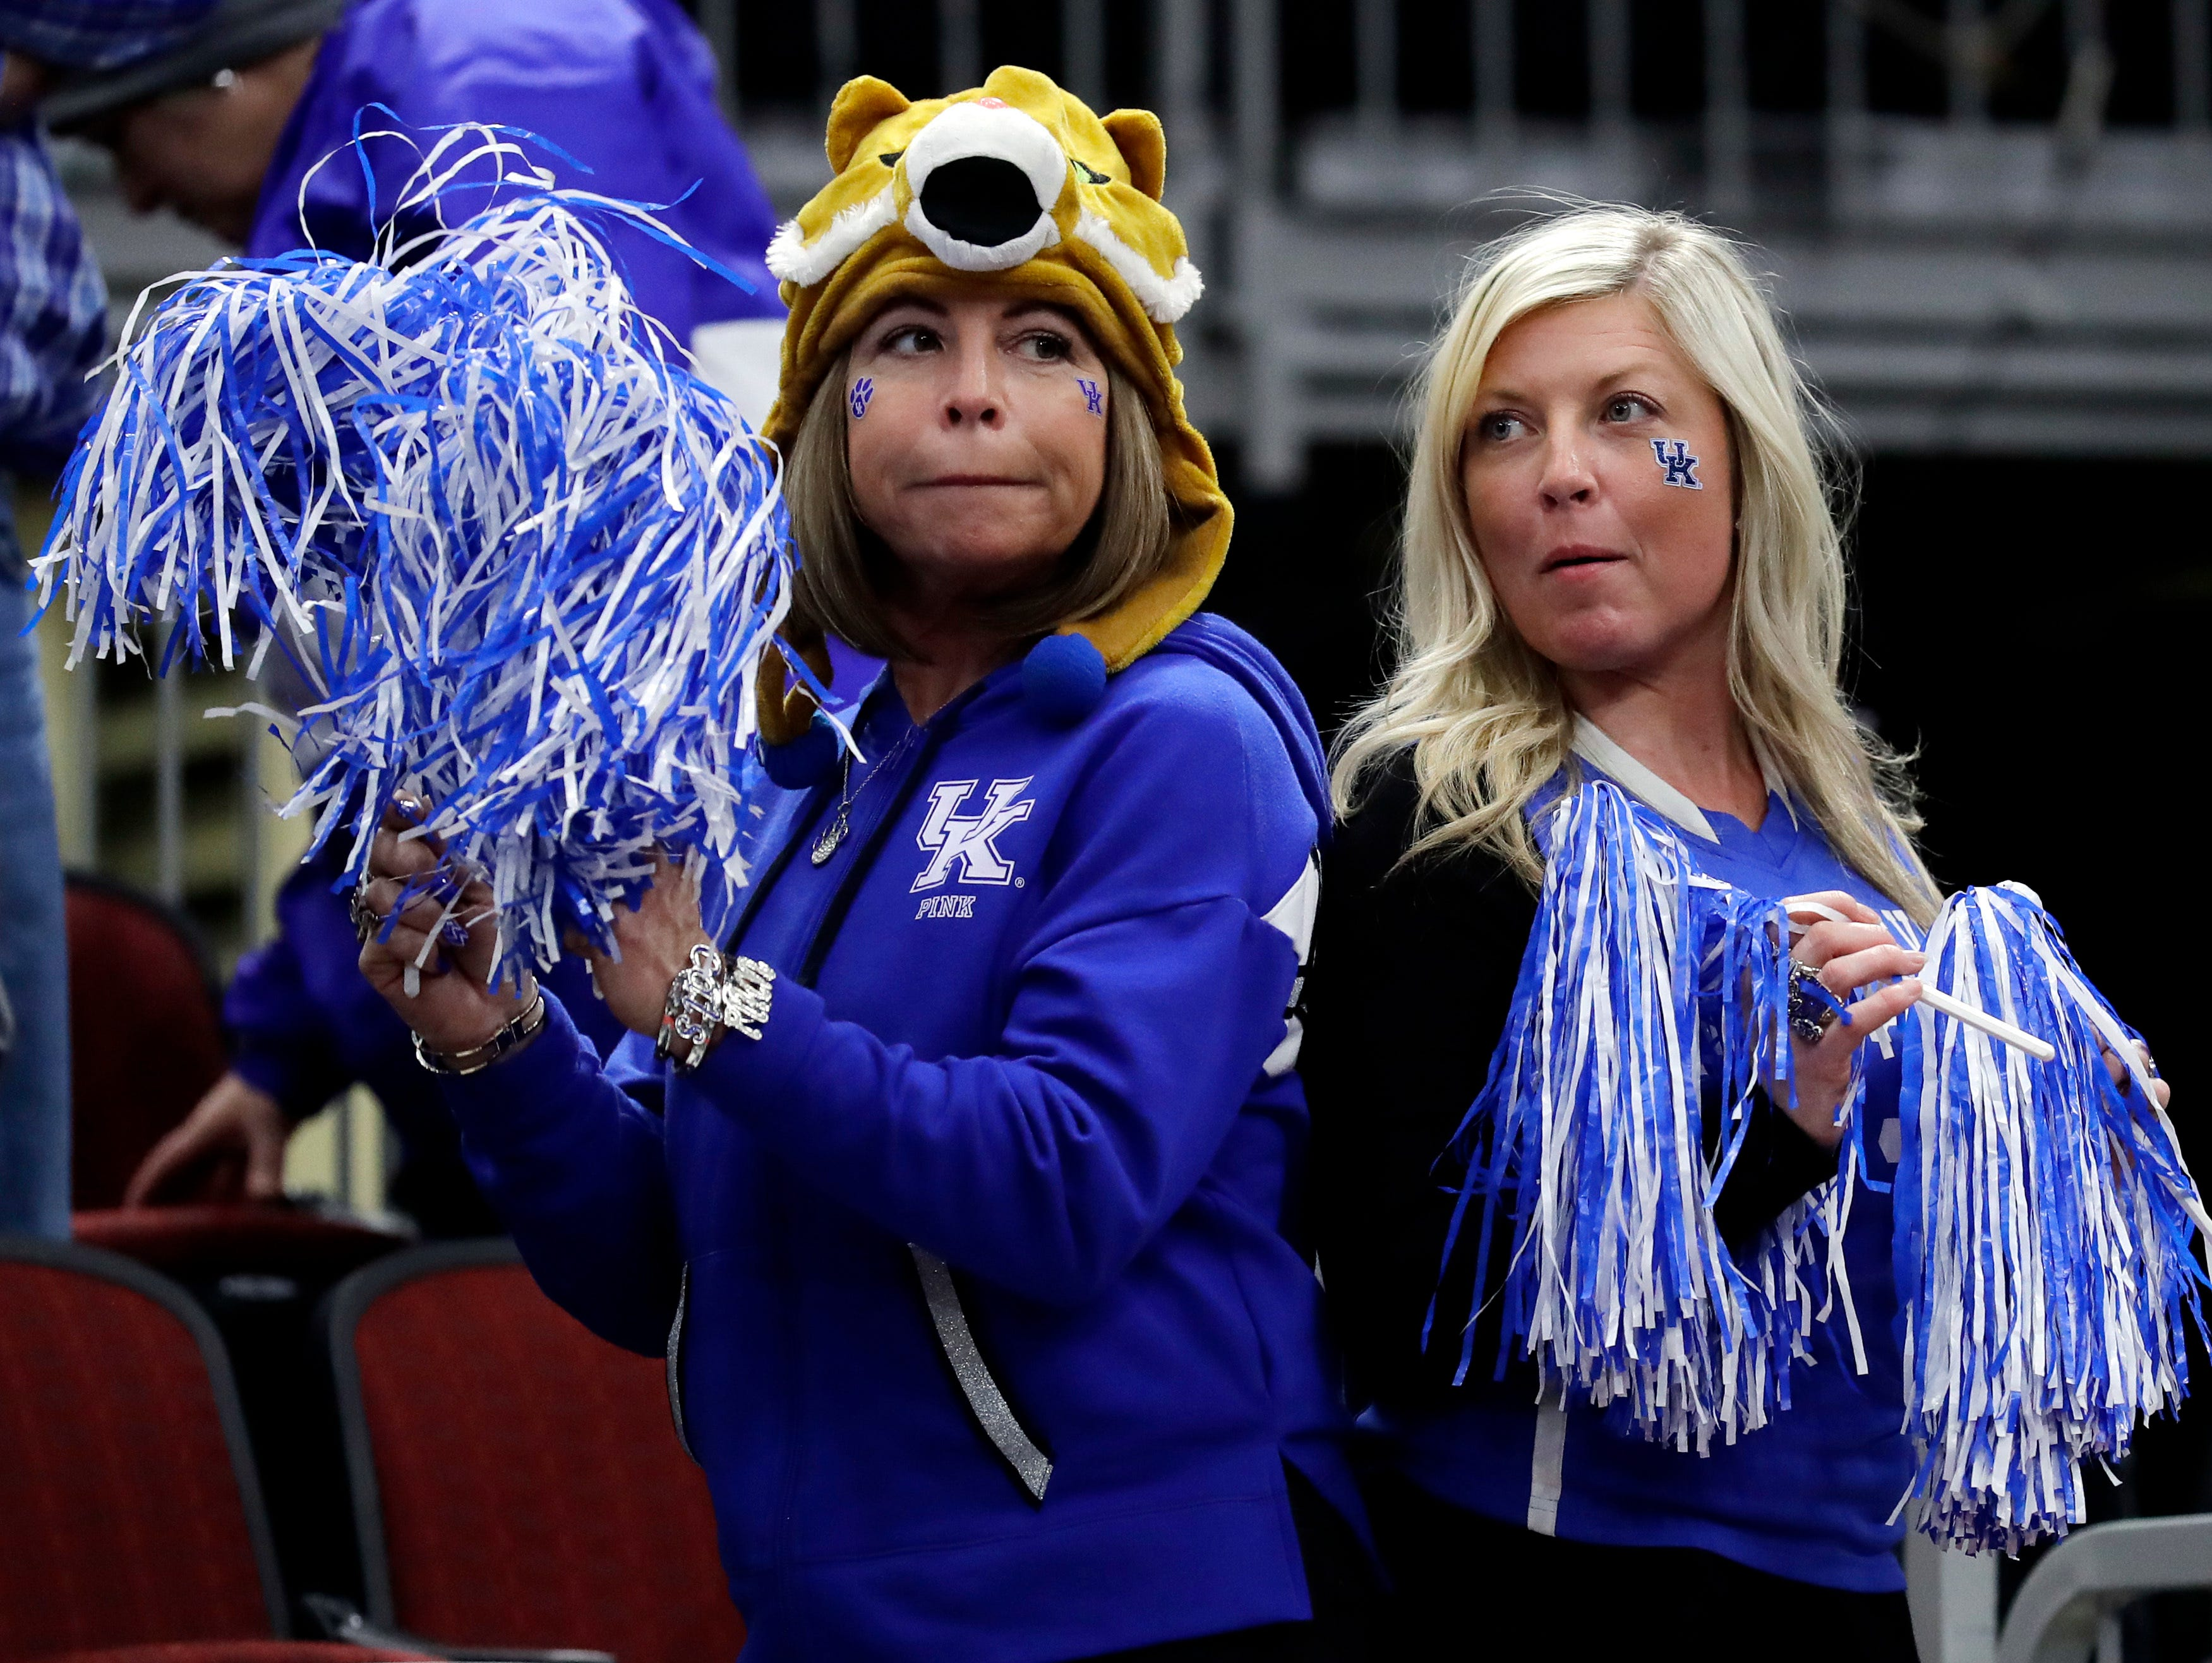 Kentucky fans cheer for their team during the second half of an NCAA college basketball game against North Carolina in the fifth annual CBS Sports Classic, Saturday, Dec. 22, 2018, in Chicago.